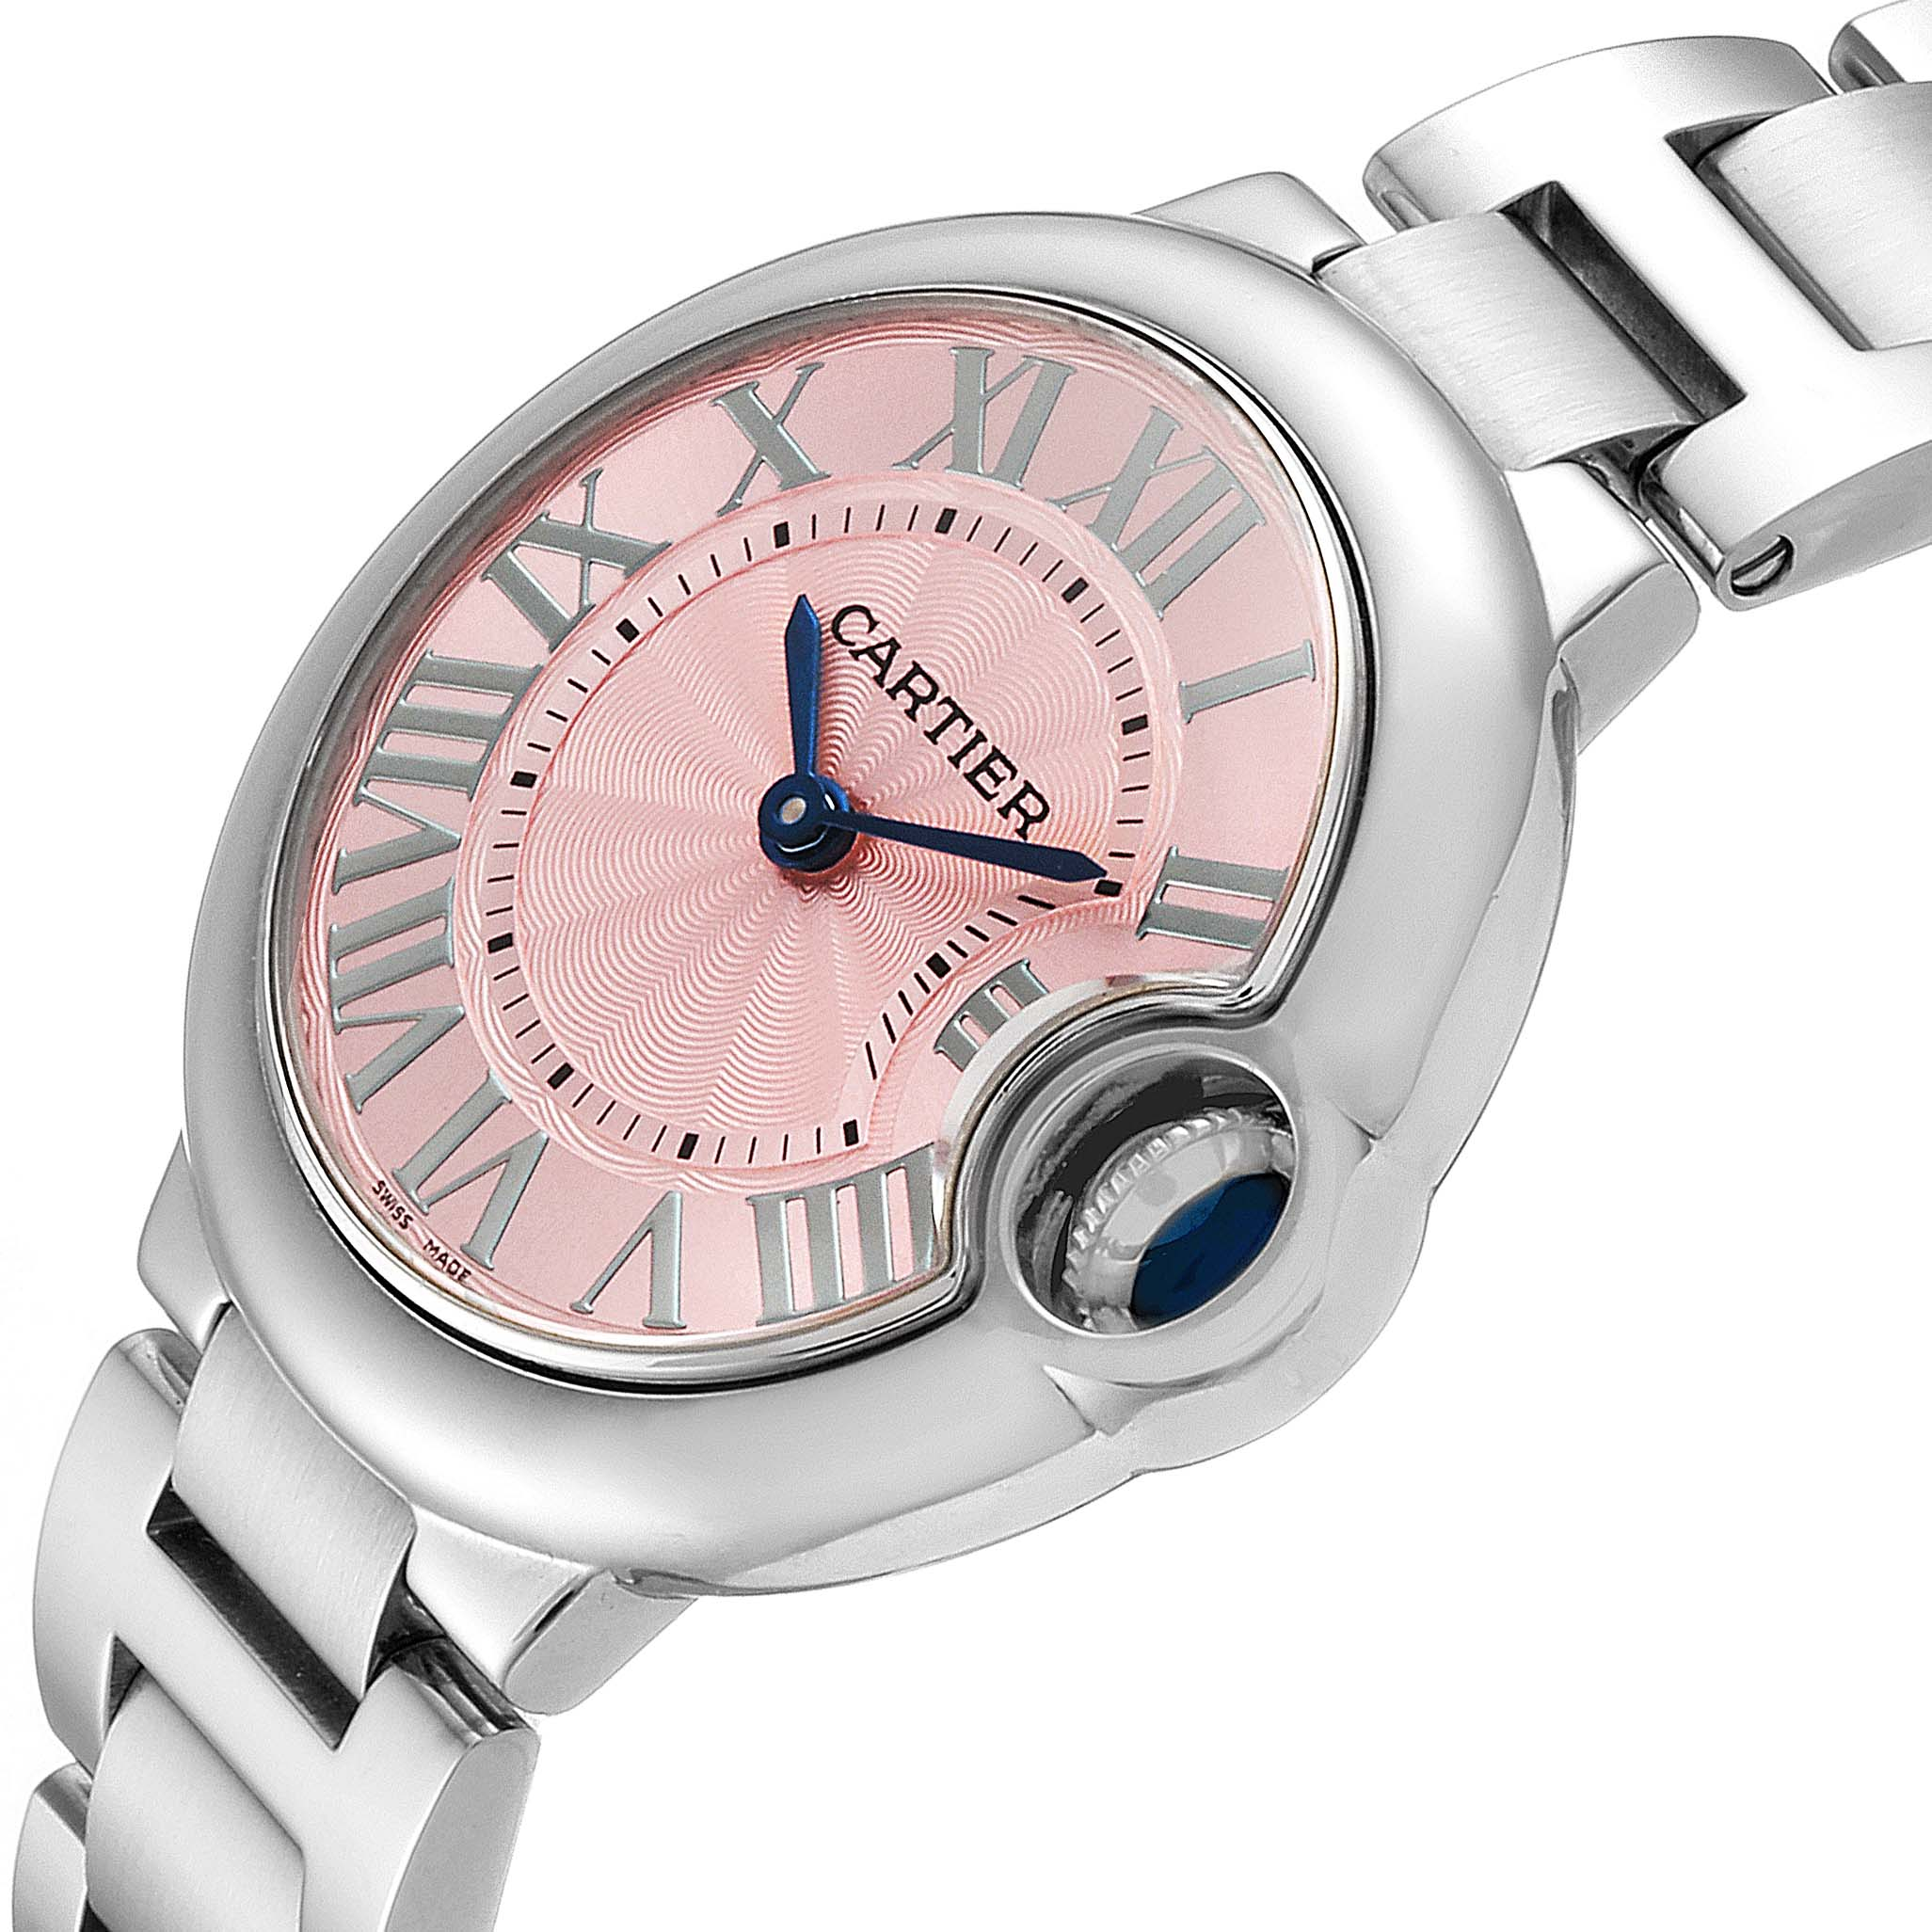 Cartier Ballon Bleu 33 Pink Dial Steel Ladies Watch WSBB0033 SwissWatchExpo